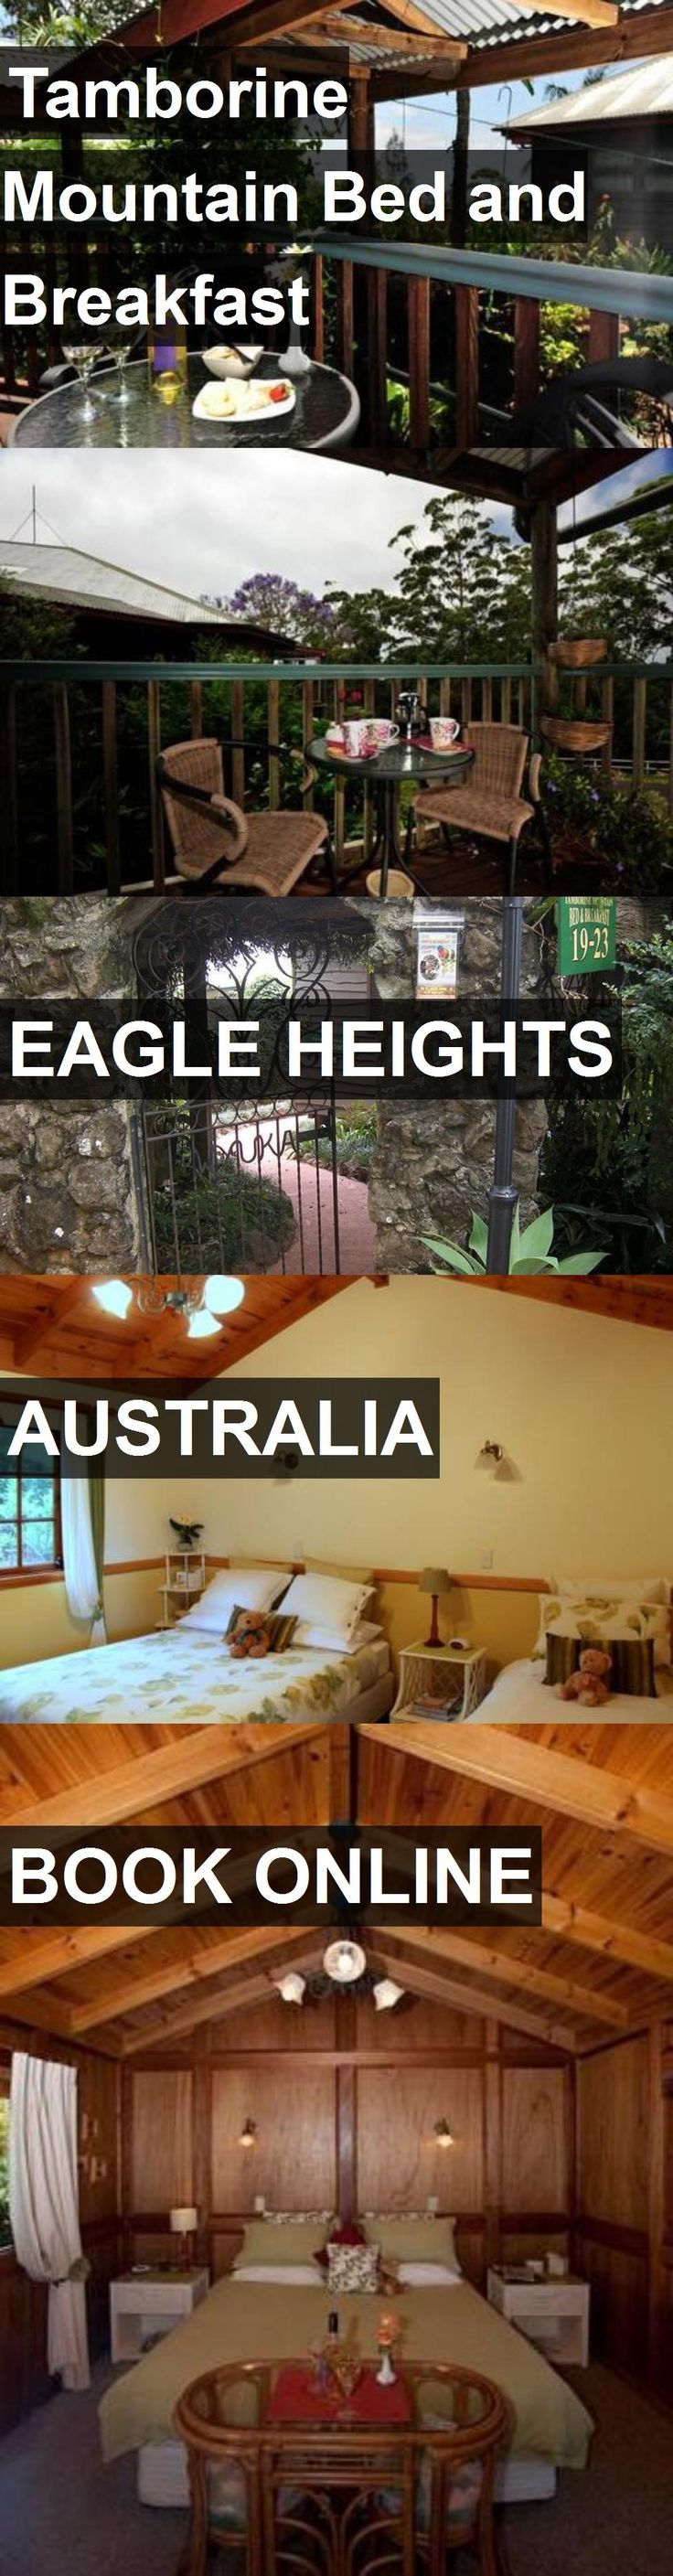 Hotel Tamborine Mountain Bed and Breakfast in Eagle Heights, Australia. For more information, photos, reviews and best prices please follow the link. #Australia #EagleHeights #travel #vacation #hotel